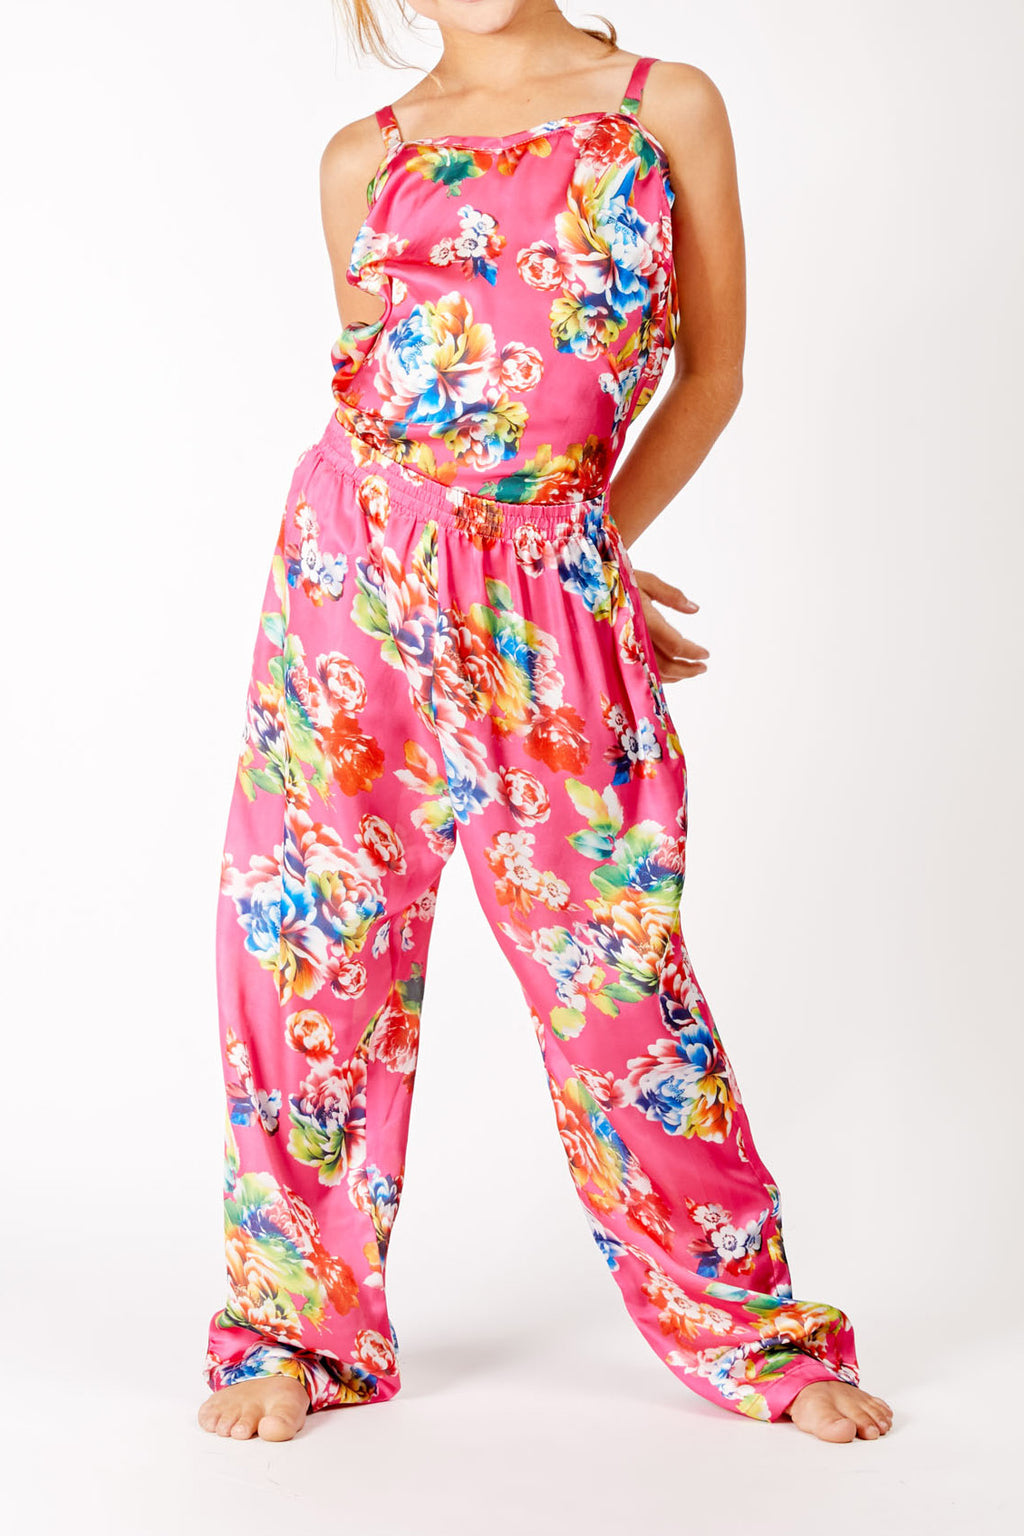 Hot Pink Floral Satin Trouser